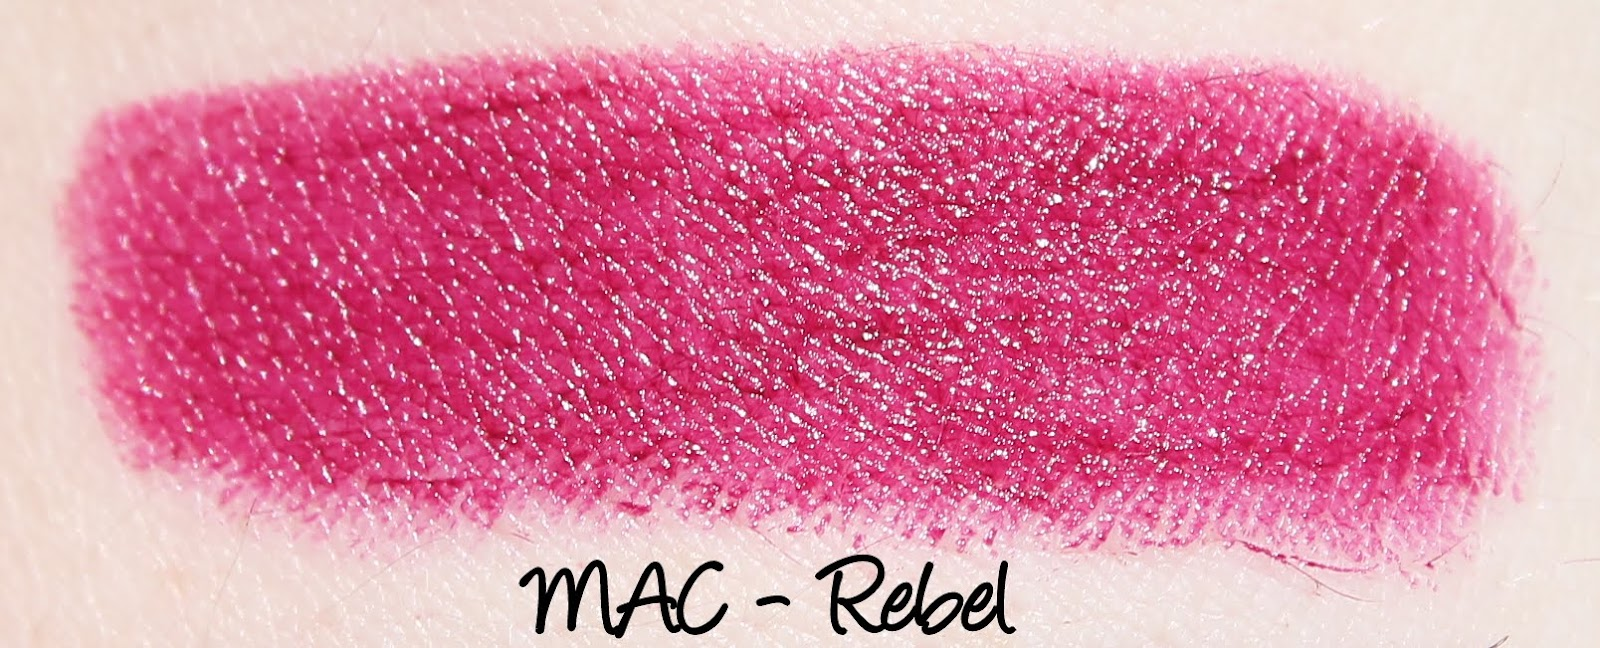 MAC Heirloom Mix Lipsticks - Rebel Swatches & Review